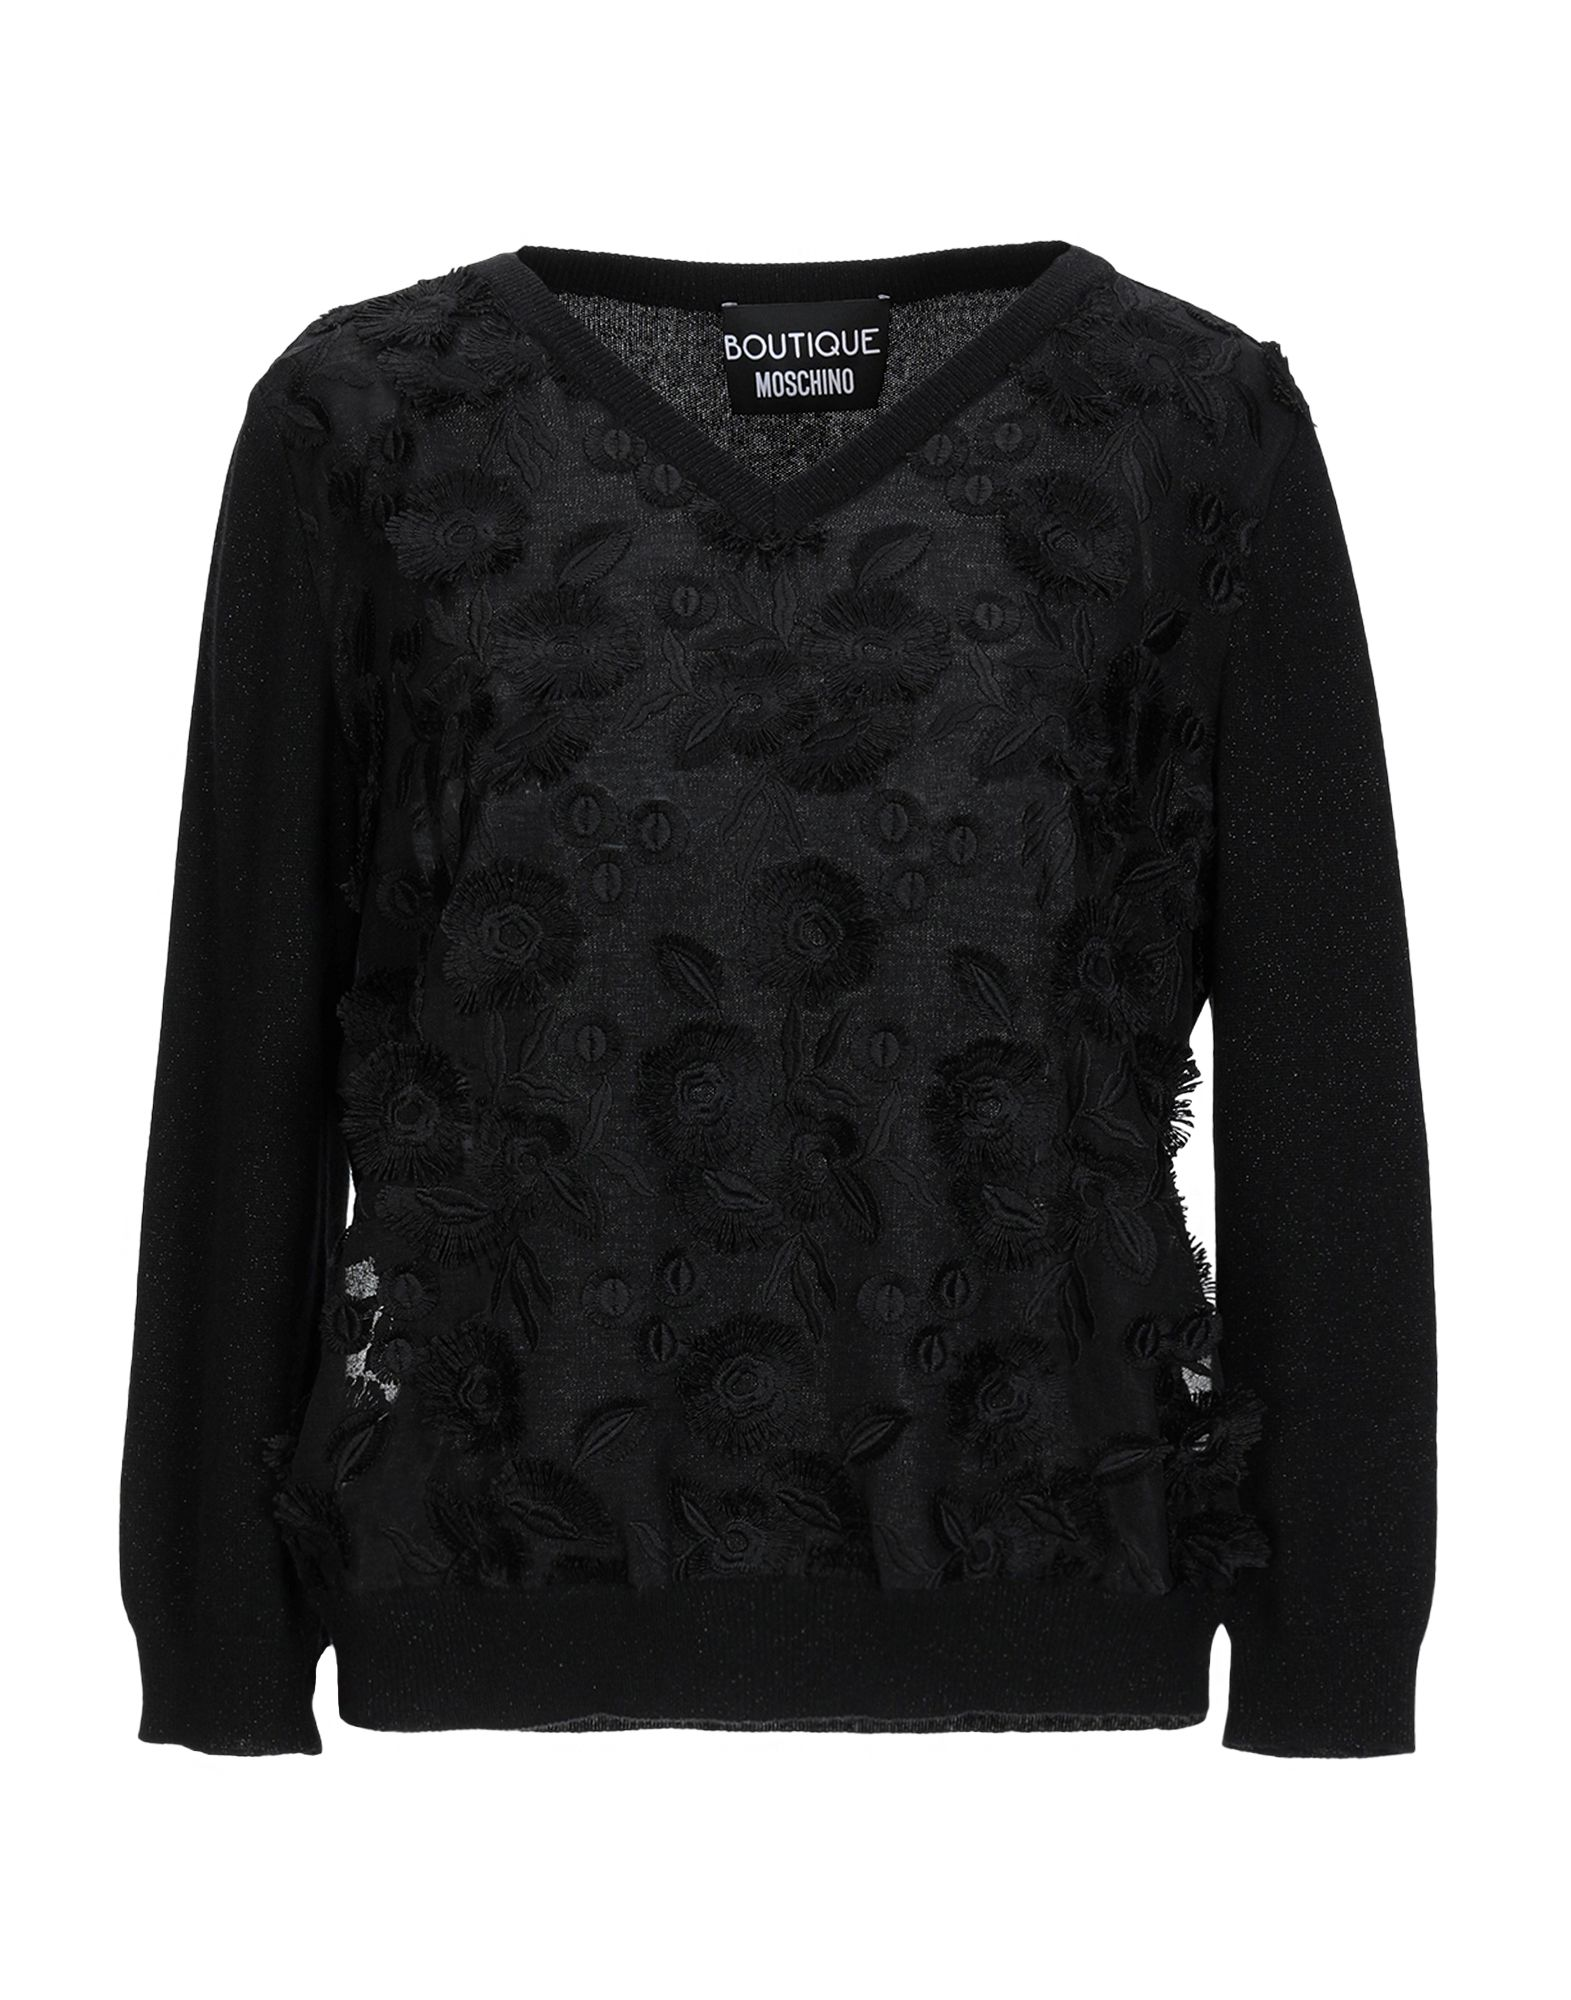 BOUTIQUE MOSCHINO Sweaters - Item 39924357